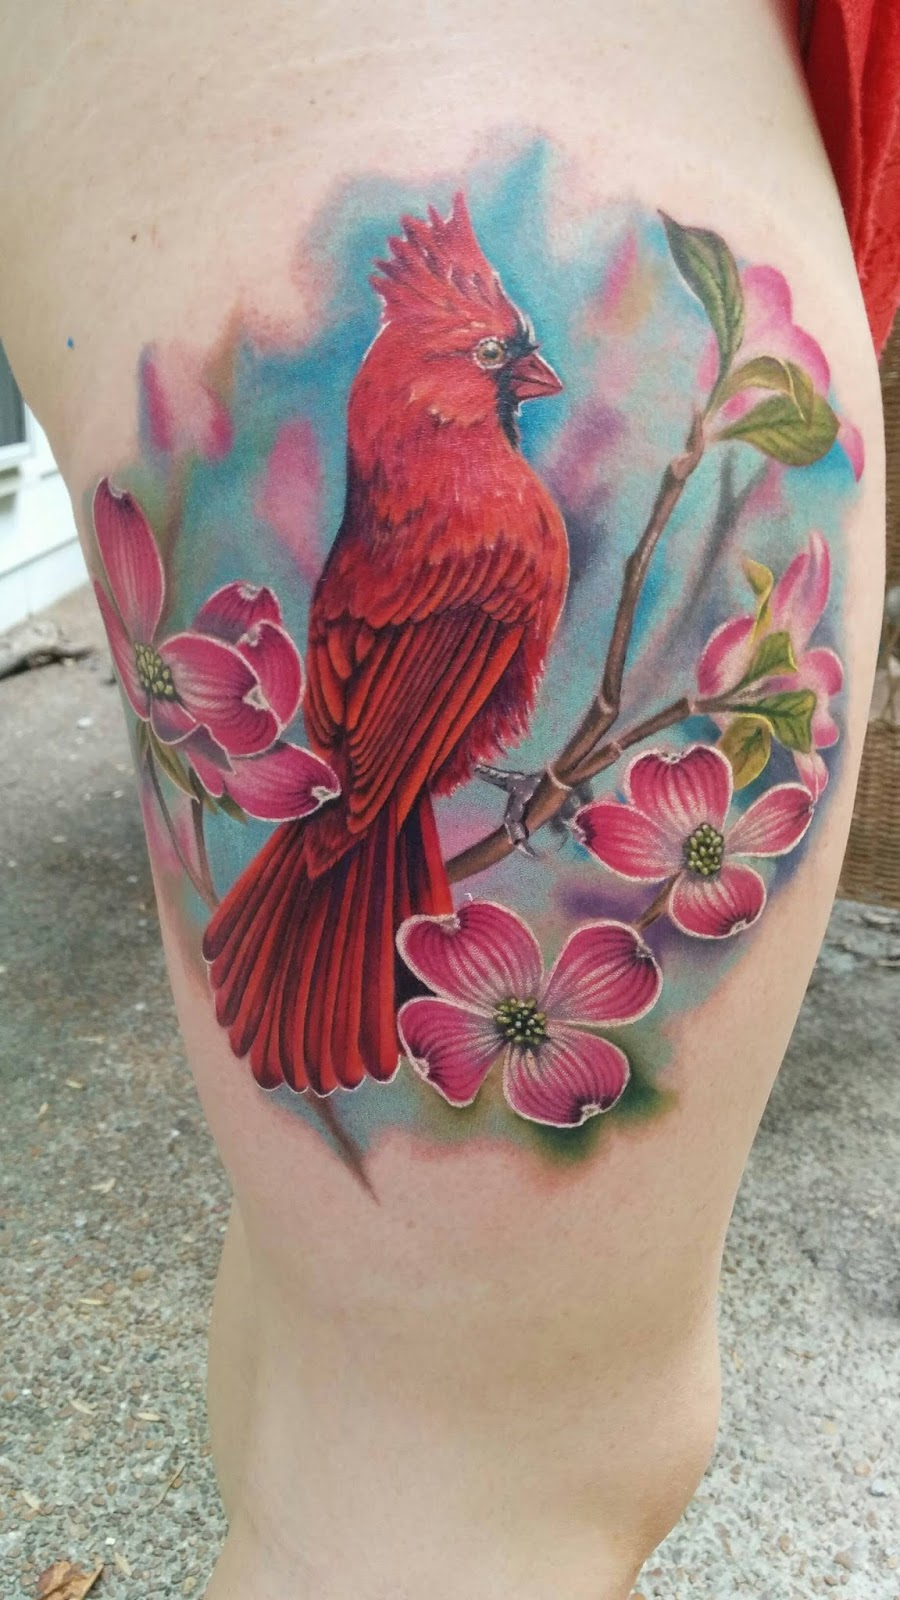 Awesome Inks Tattoo Ideas Inspiration And Information Ideas And Designs